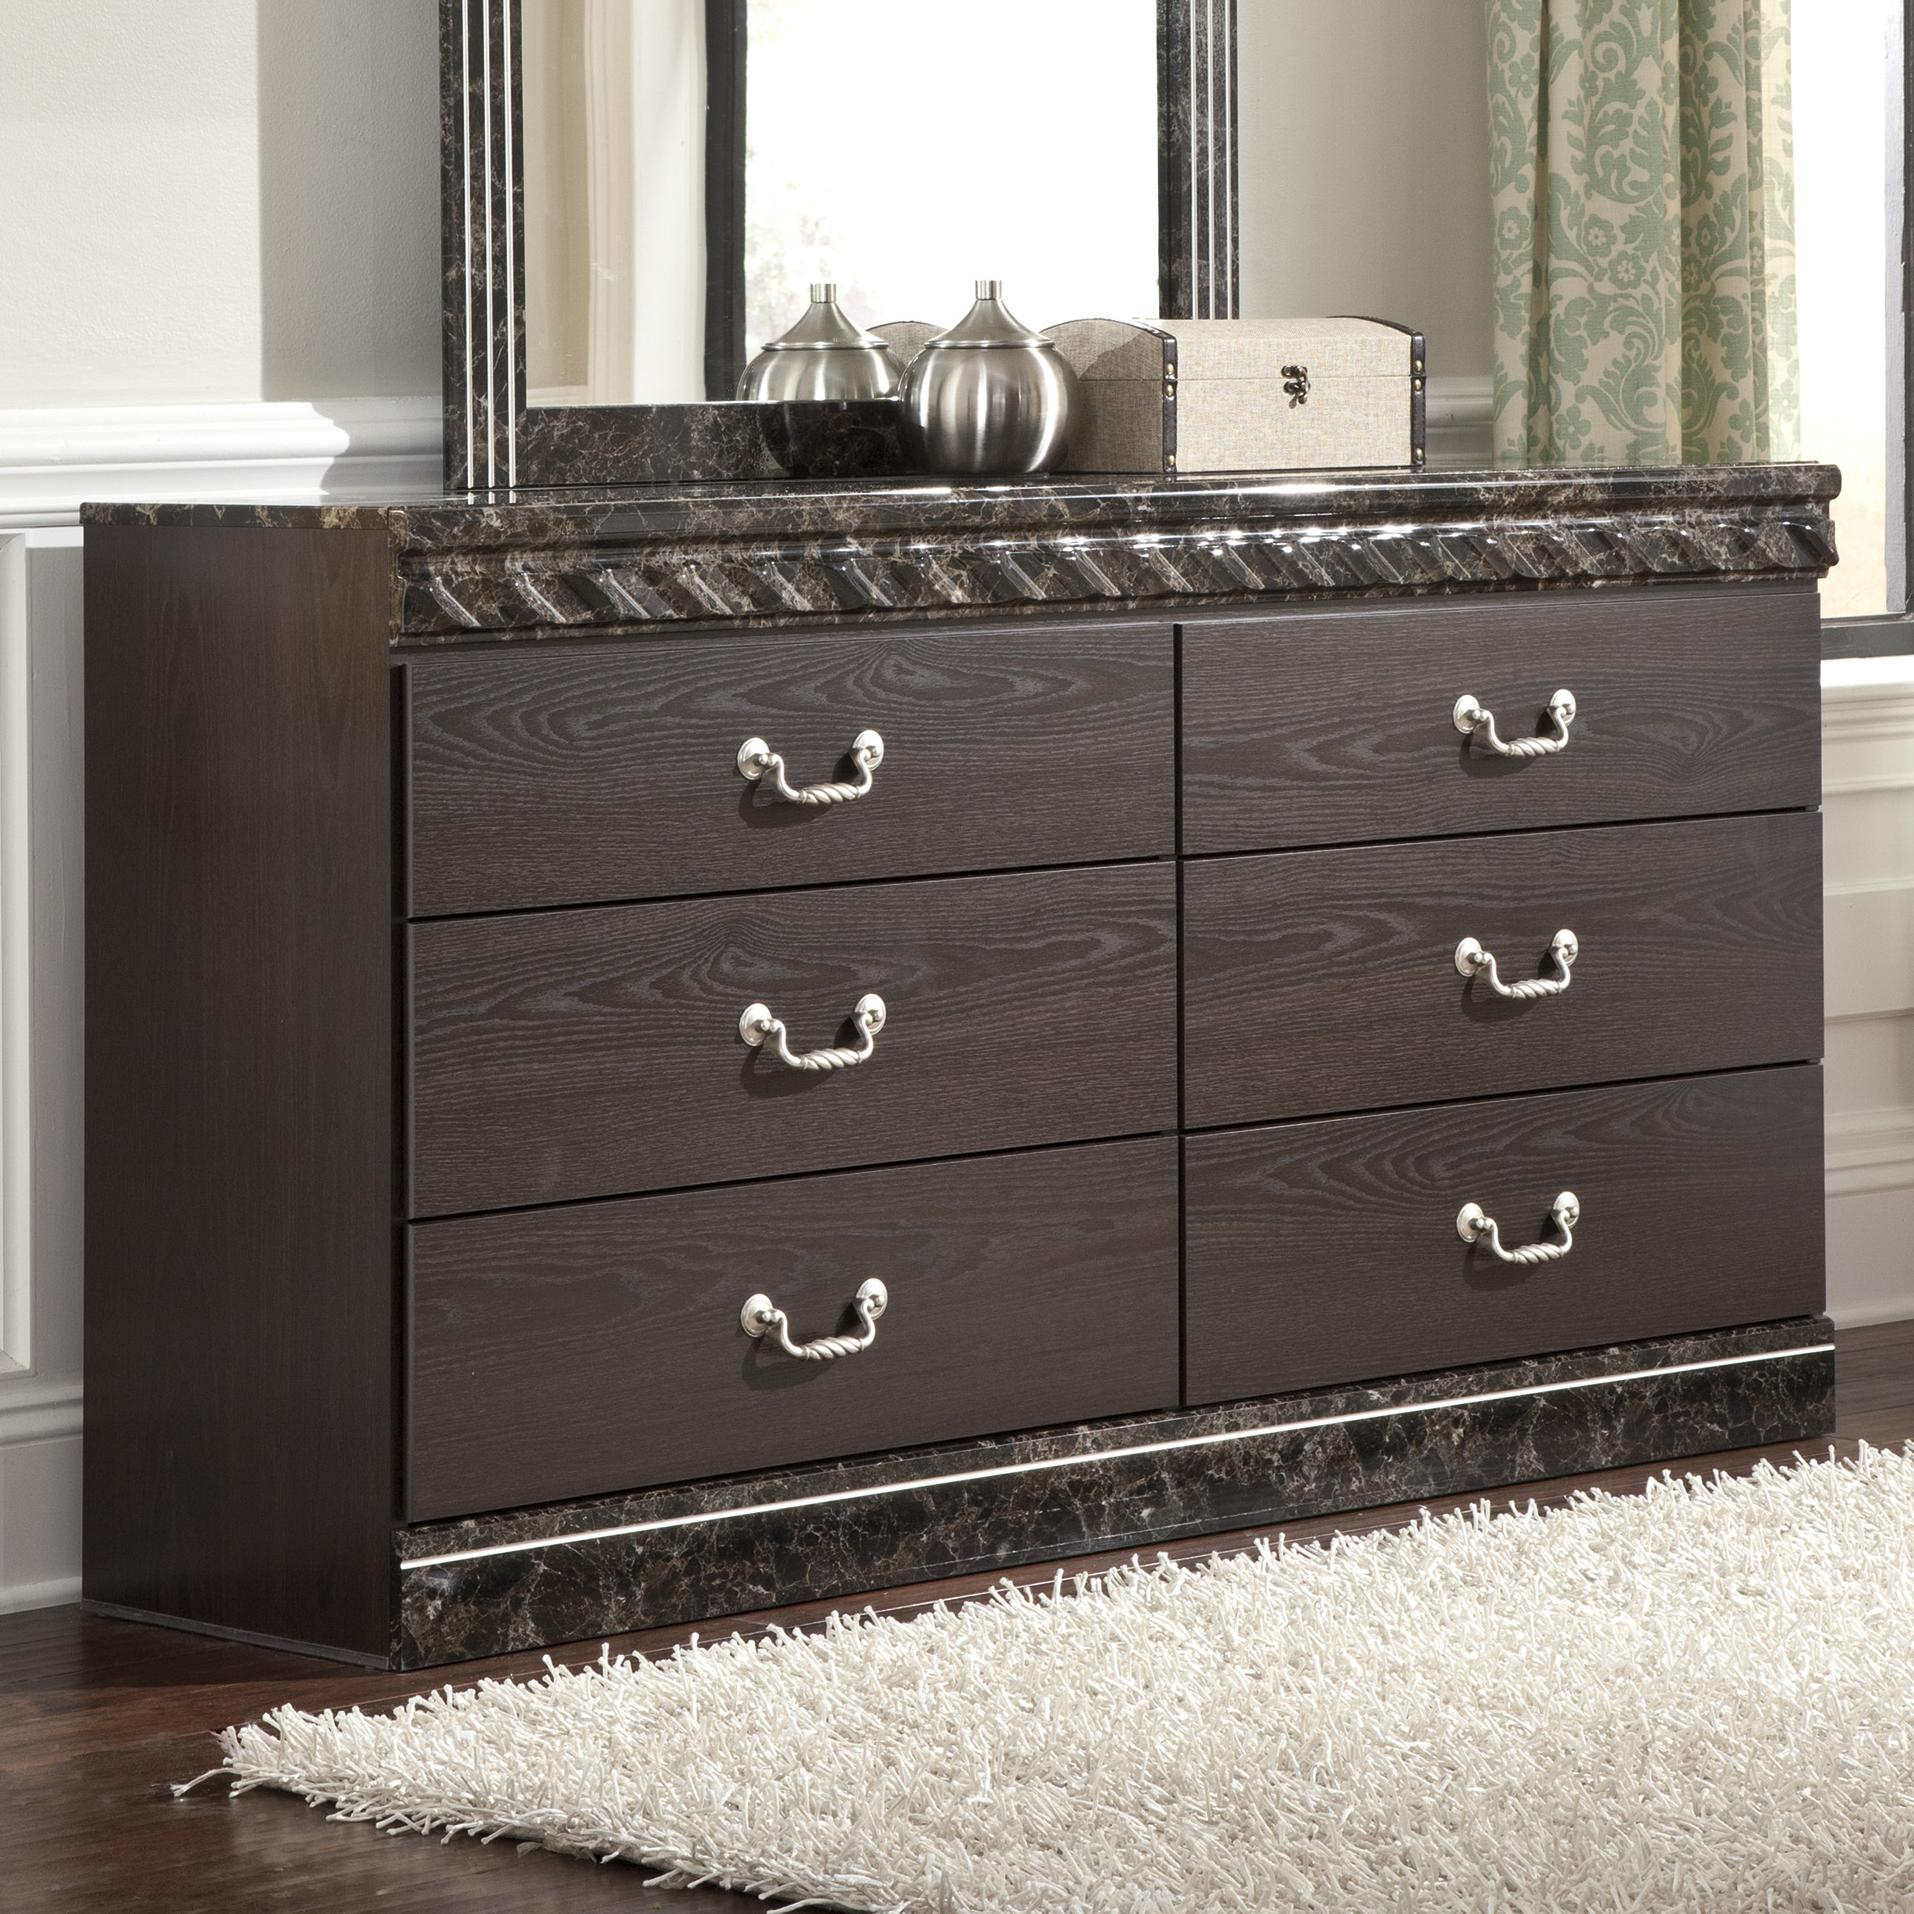 Signature Design by Ashley Vachel Dresser - Item Number: B264-31